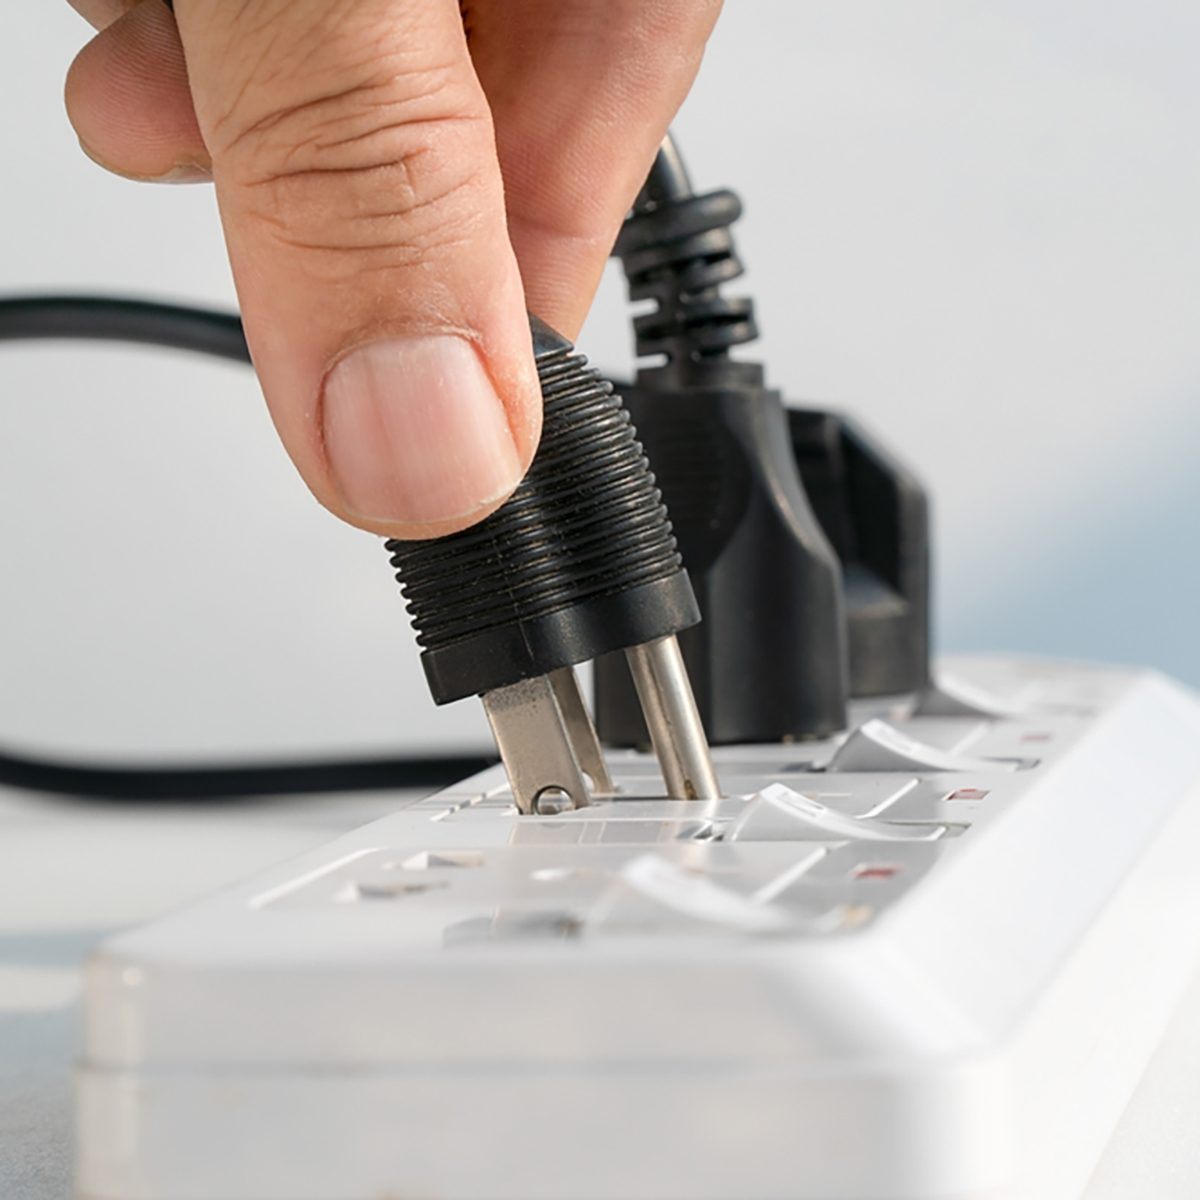 Close up Elderly hand plugging into electrical outlet;